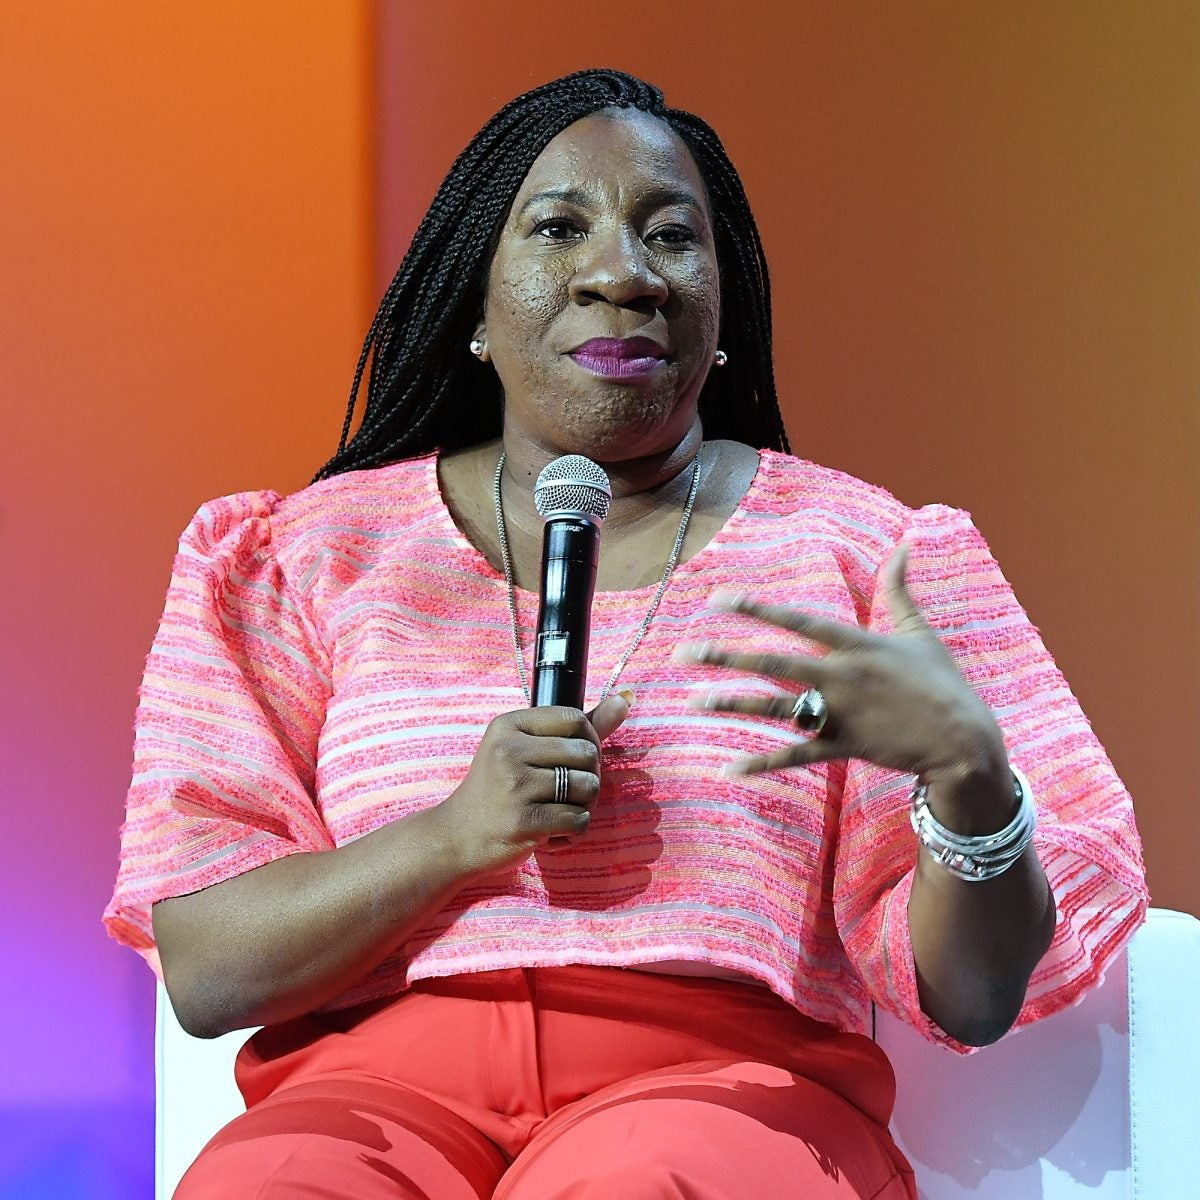 Me Too Founder Tarana Burke On What It's Like Caring For A Spouse With Coronavirus